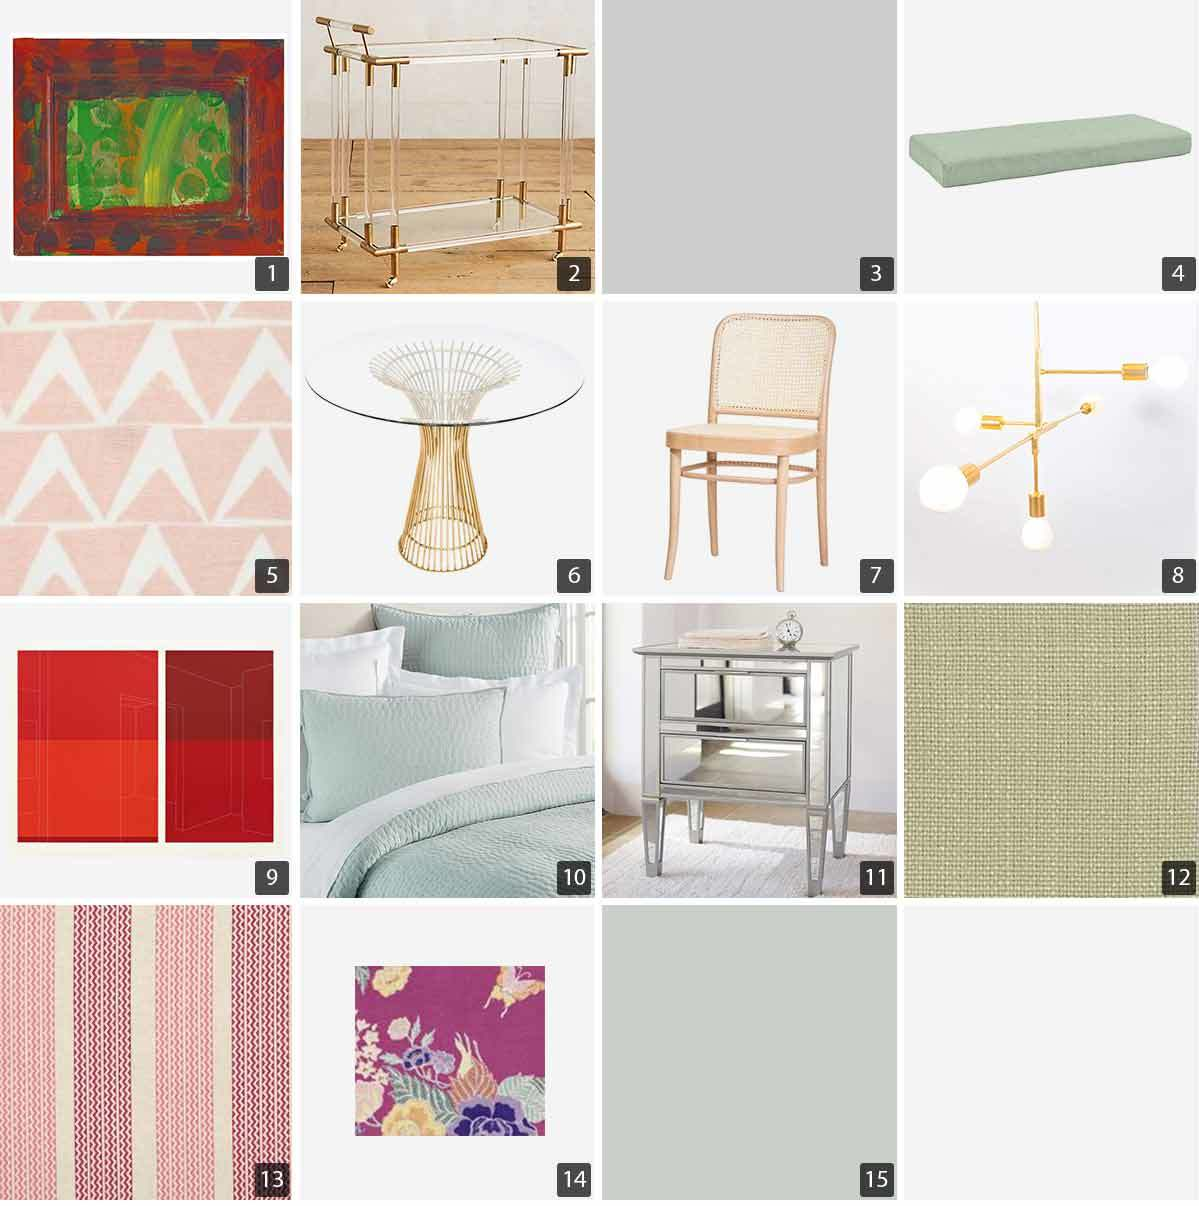 Collage of home products including artwork, decor, furniture, and paint. photo